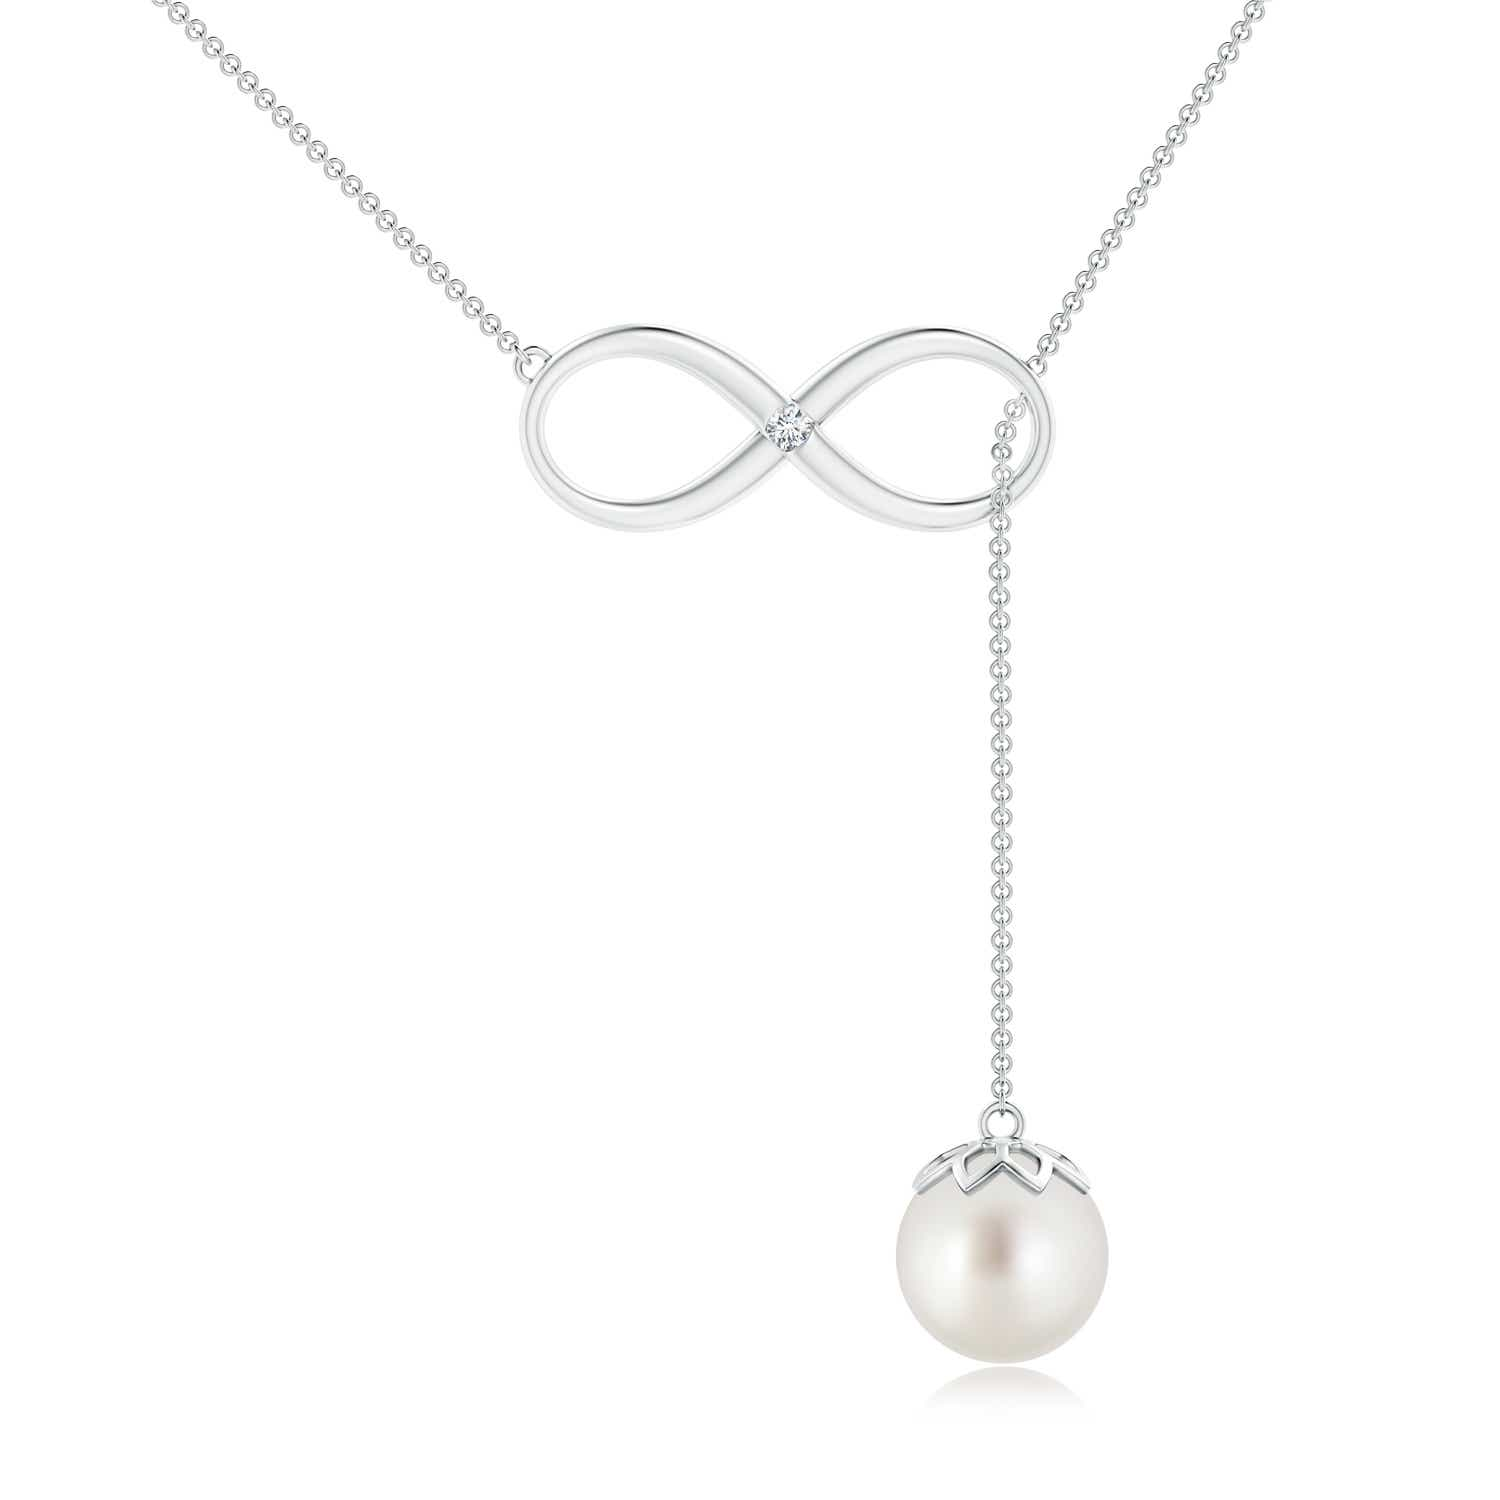 Angara South Sea Cultured Pearl Lariat Necklace with Diamond drsEoCWXTv